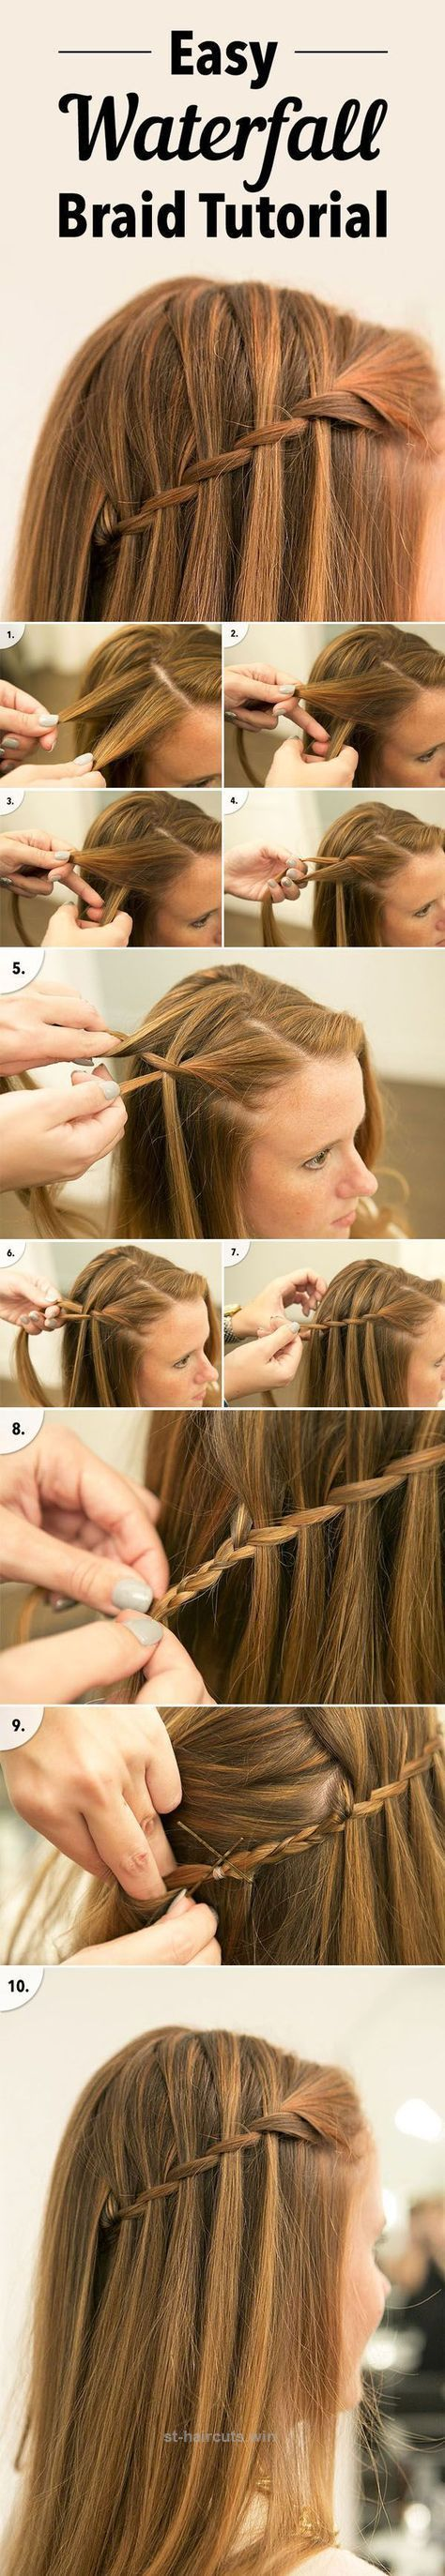 Excellent #hairstyle ideas #ponytail hairstyles #braids hairstyle #hairstyle for short hair #longhair hairstyles #wavy hairstyle #hairstyle tutorial #hairstyle step-by-step  T ..